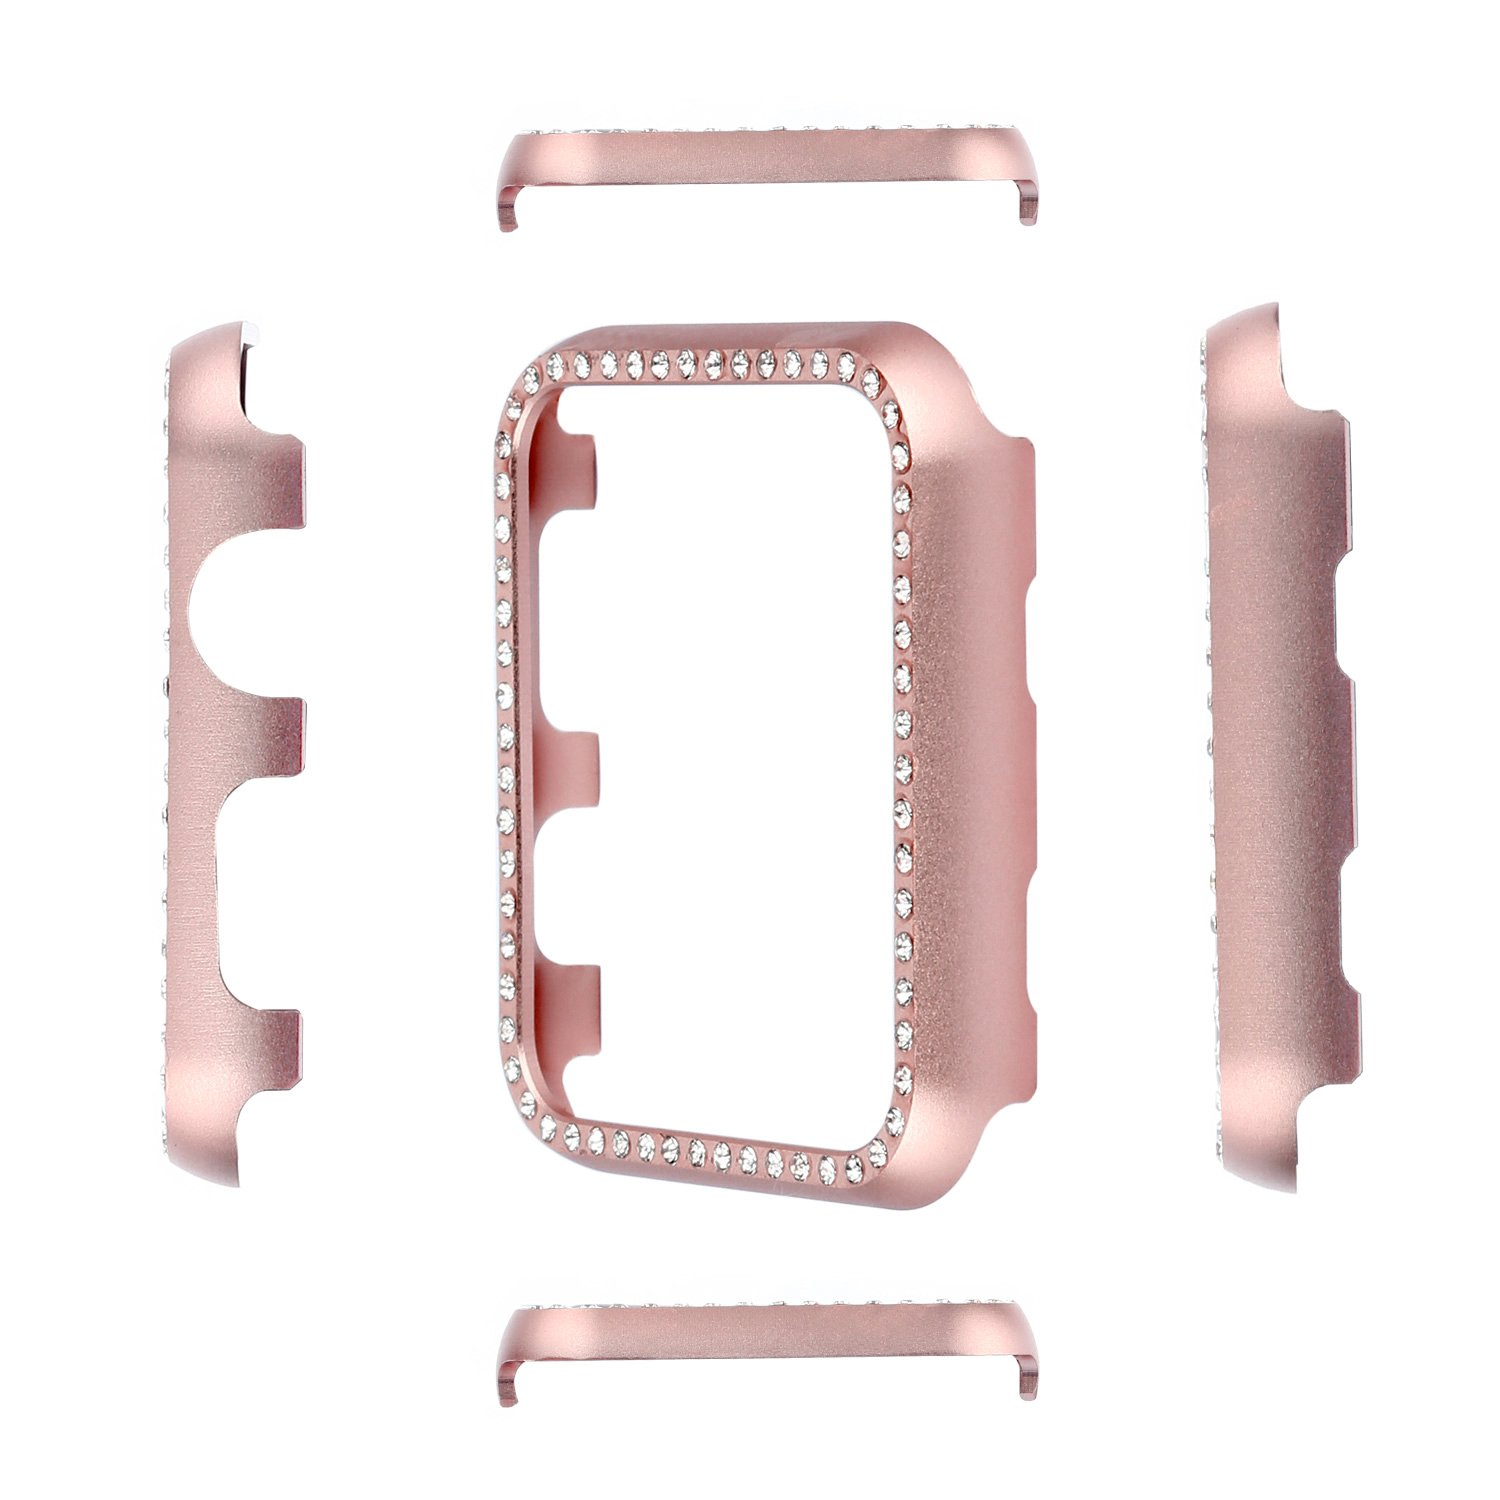 Apple Watch Bumper 42mm, iWatch Crystal Rhinestone Diamond Aluminum Case Shell Protective Frame Cover for 42mm Apple Watch Series 3/2/1 - Rose Gold by Clatune (Image #3)